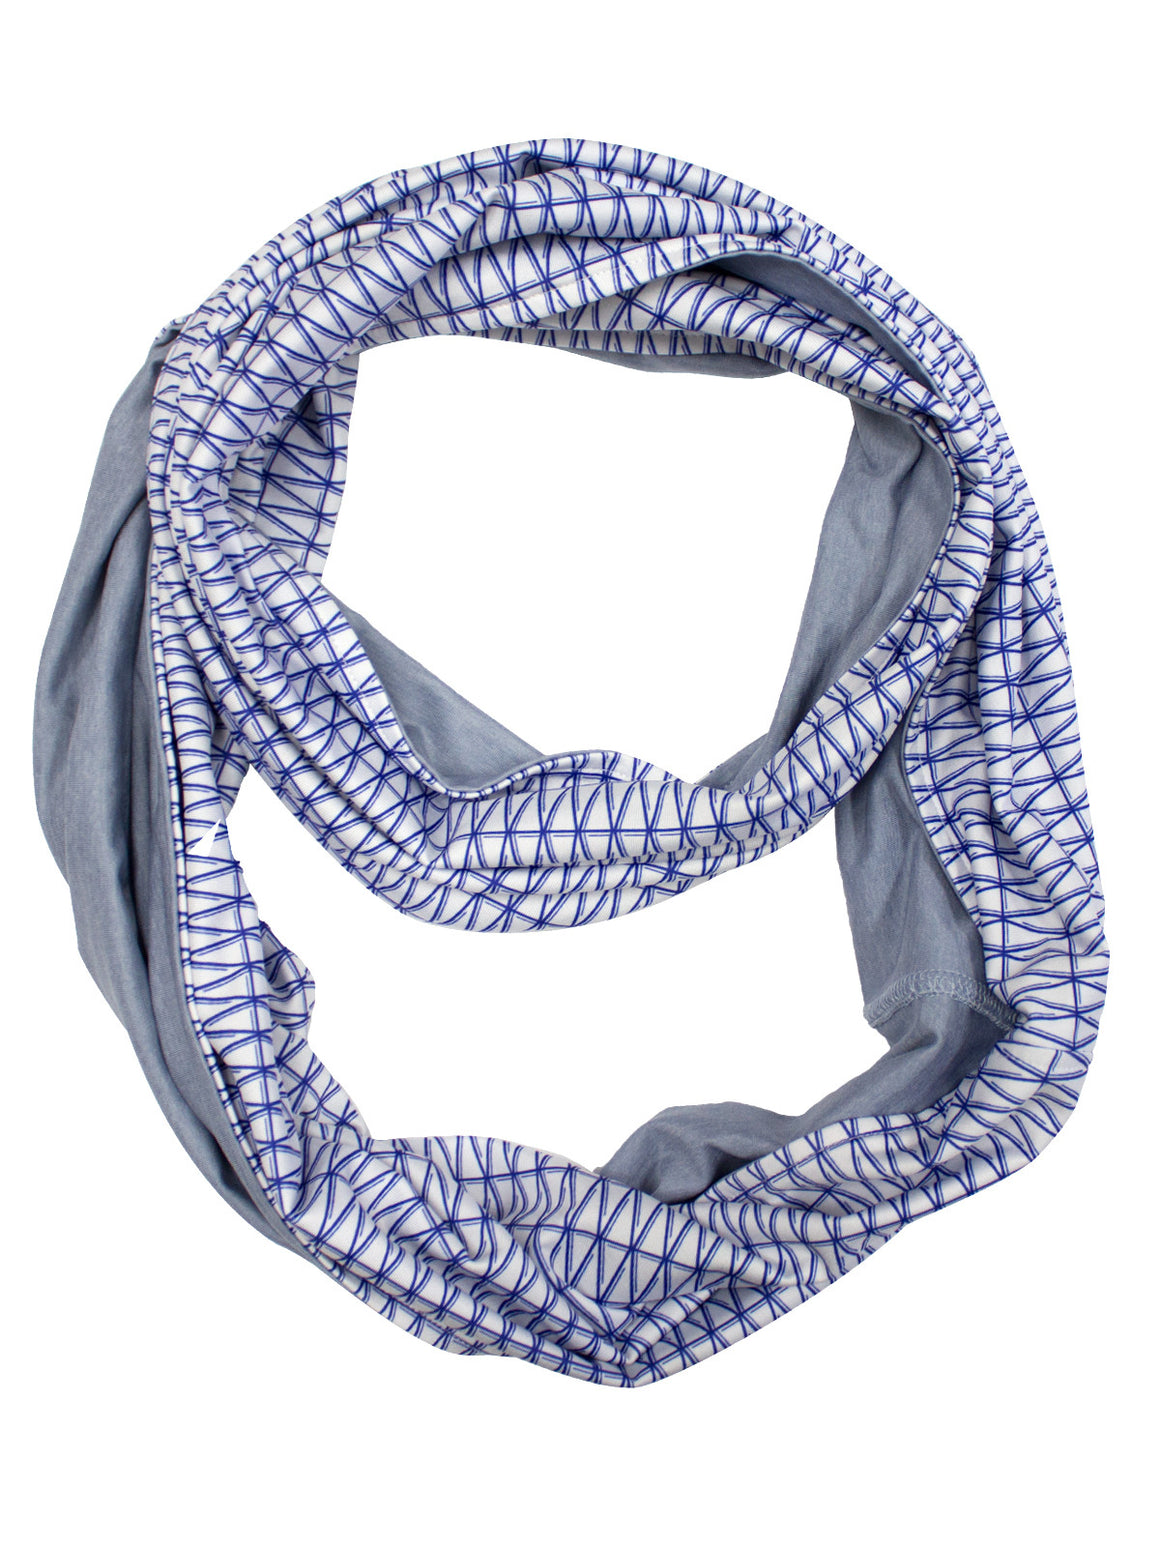 Diamond Infinity Scarf - White (Deep Violet / Charcoal Heather)